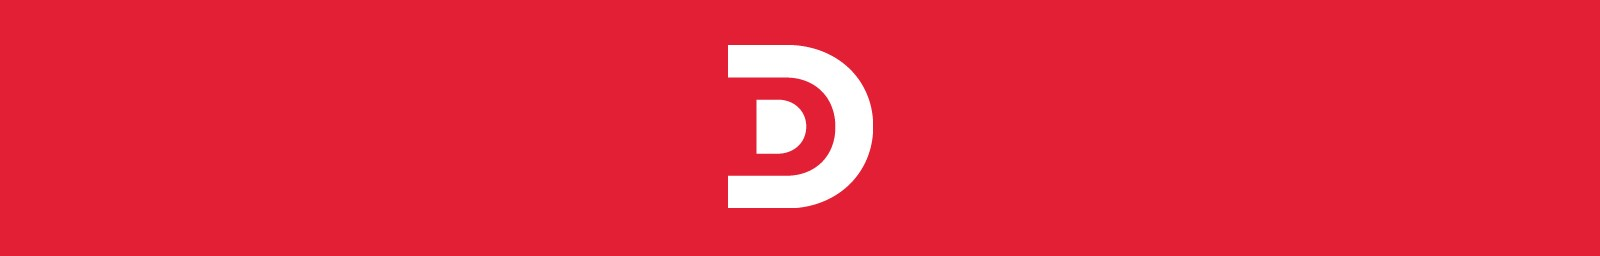 Driskell Center logo on red background